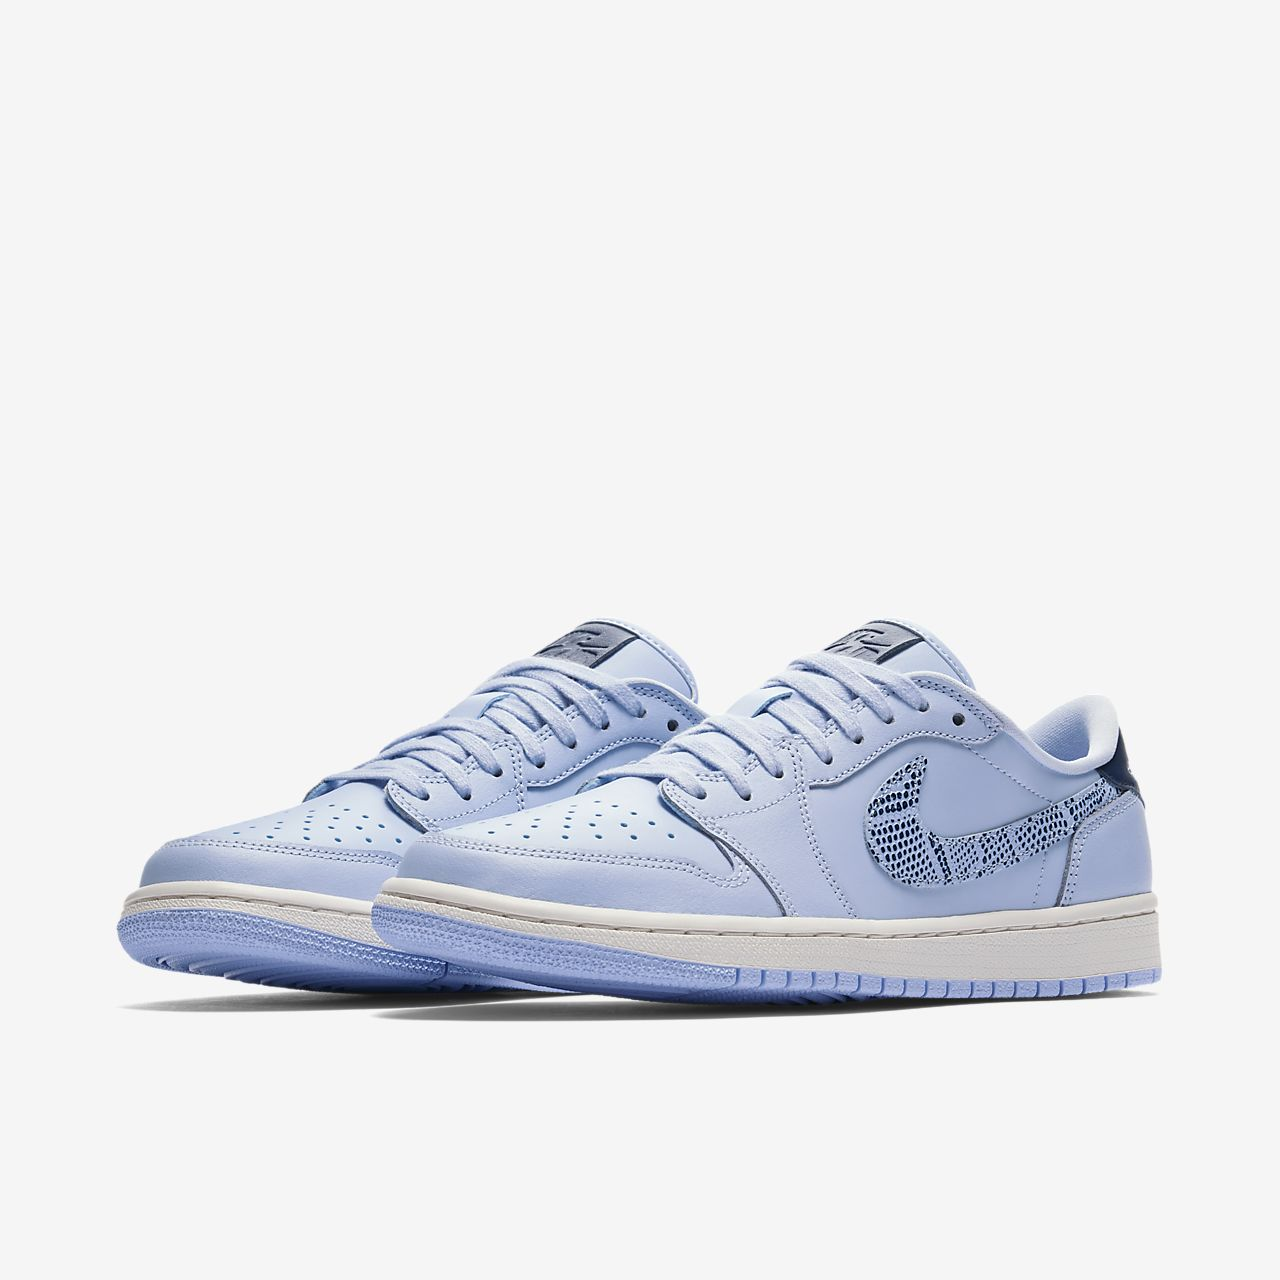 22cf8260332 Air Jordan 1 Retro Low OG Damesschoen. Nike.com NL